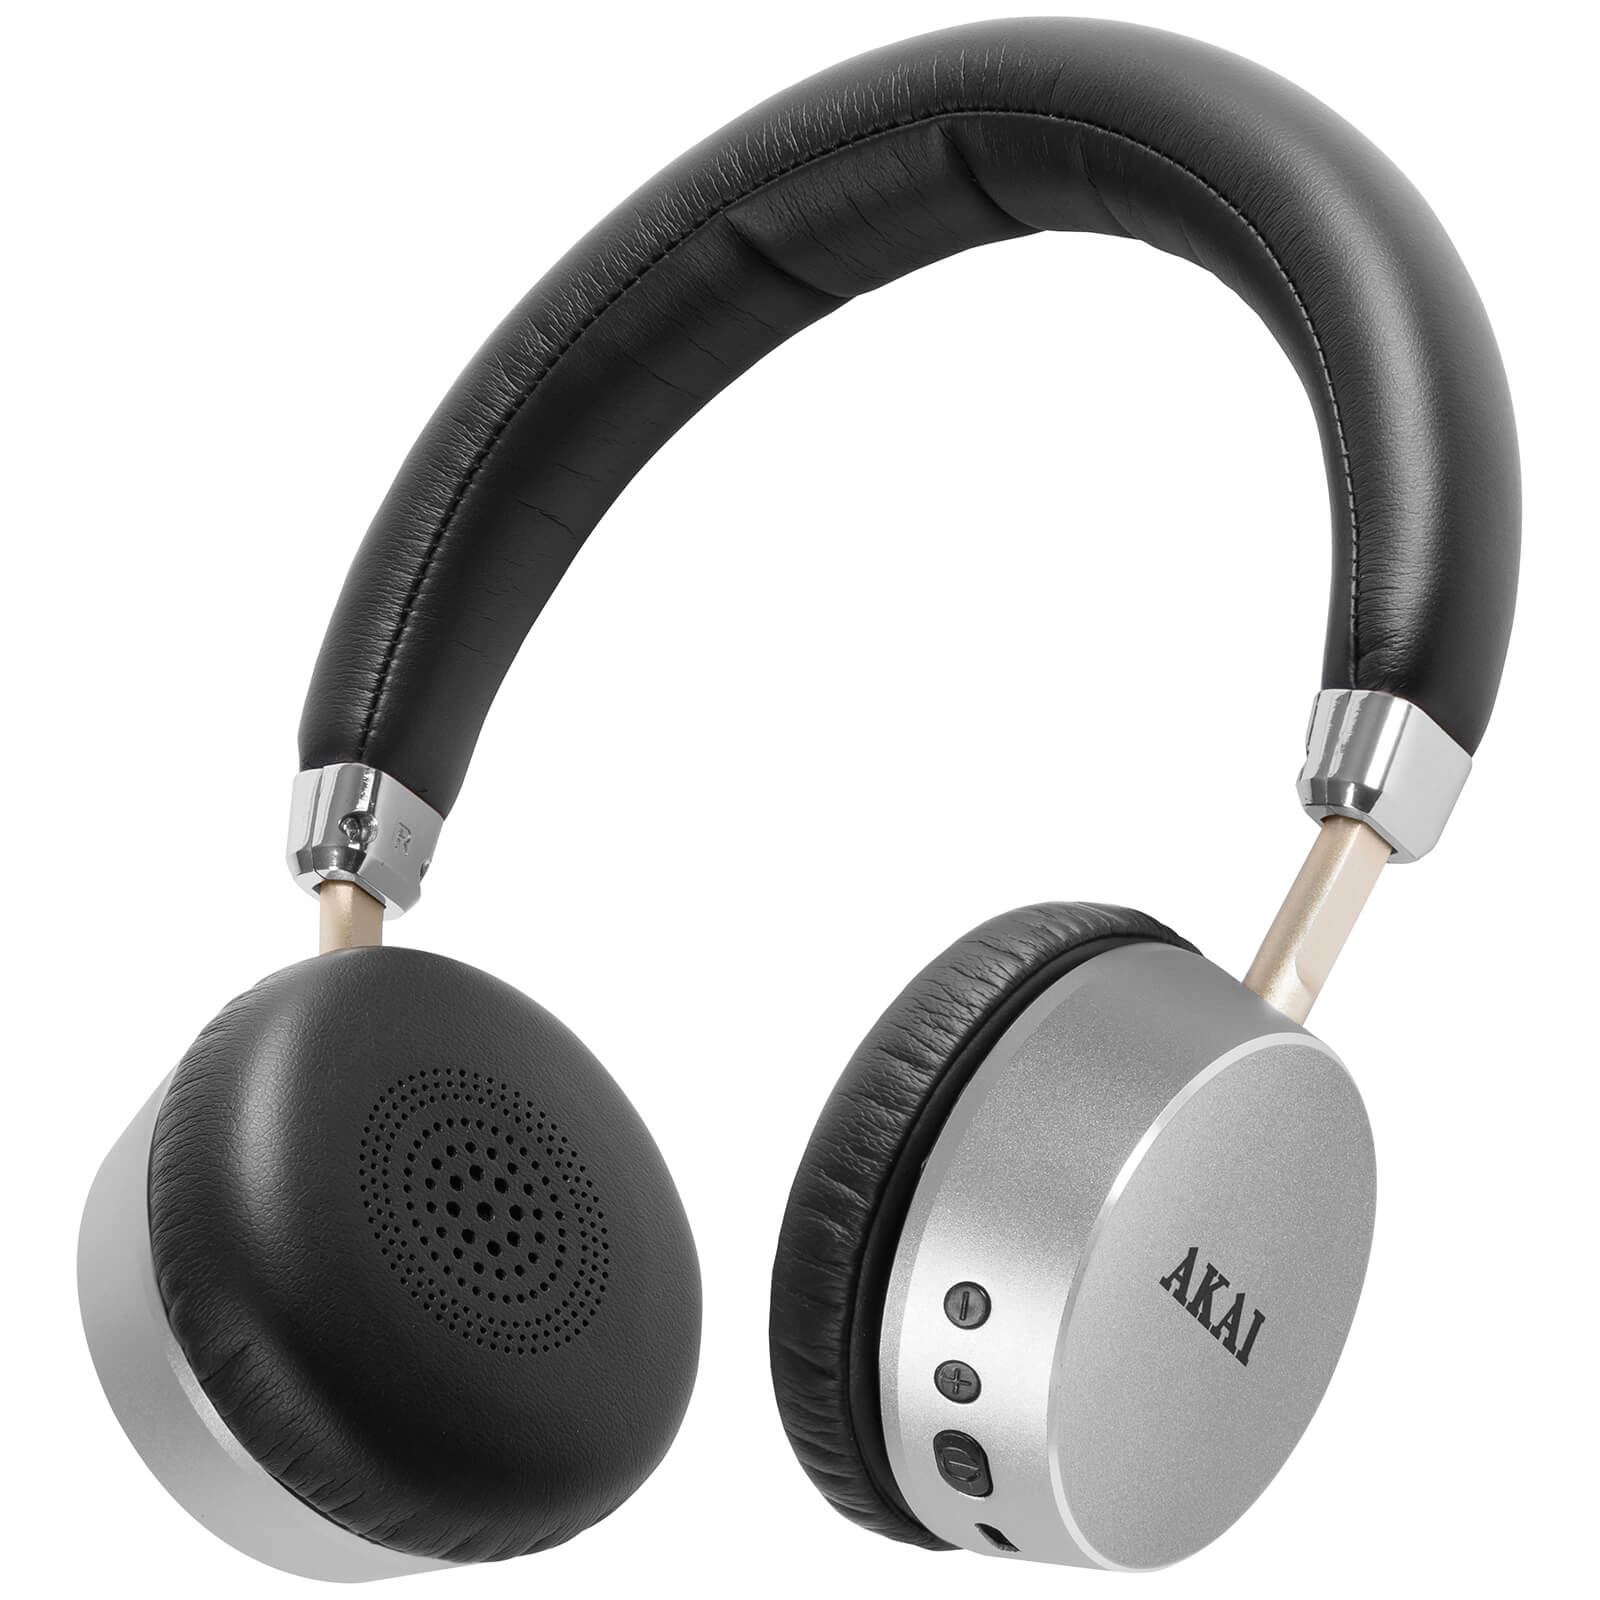 Akai DYNMX Wireless Bluetooth Headphones - Silver